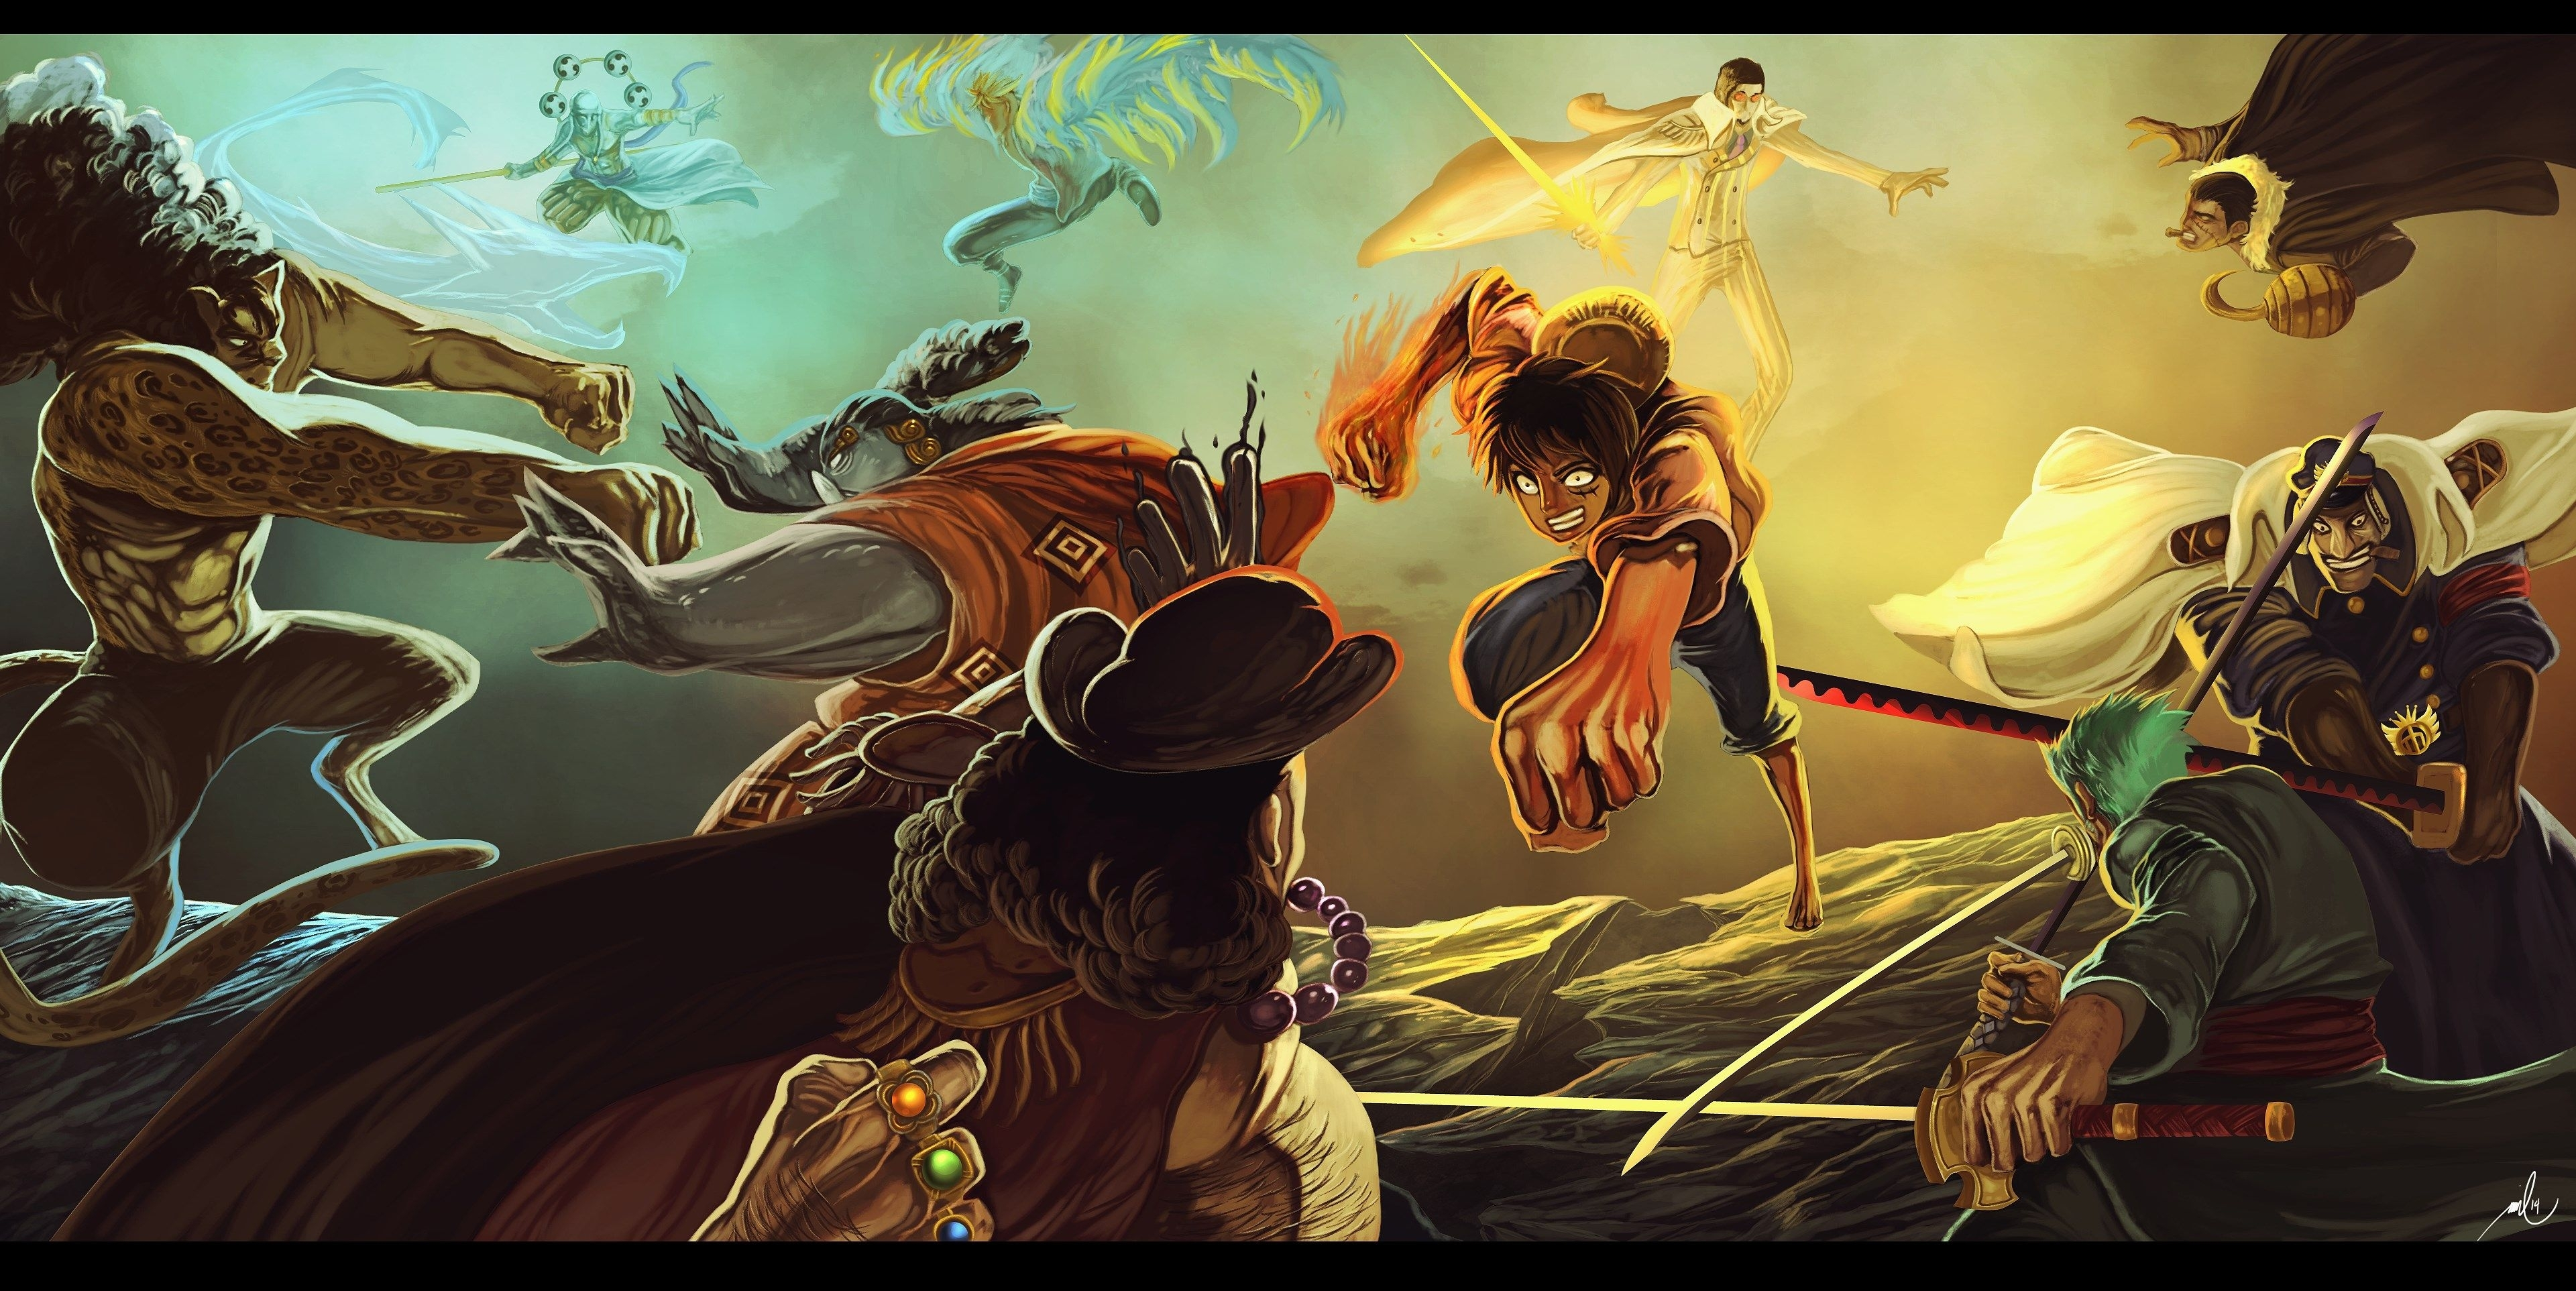 4k one piece hd wallpaper (3841x1925) | gogolmogol | pinterest